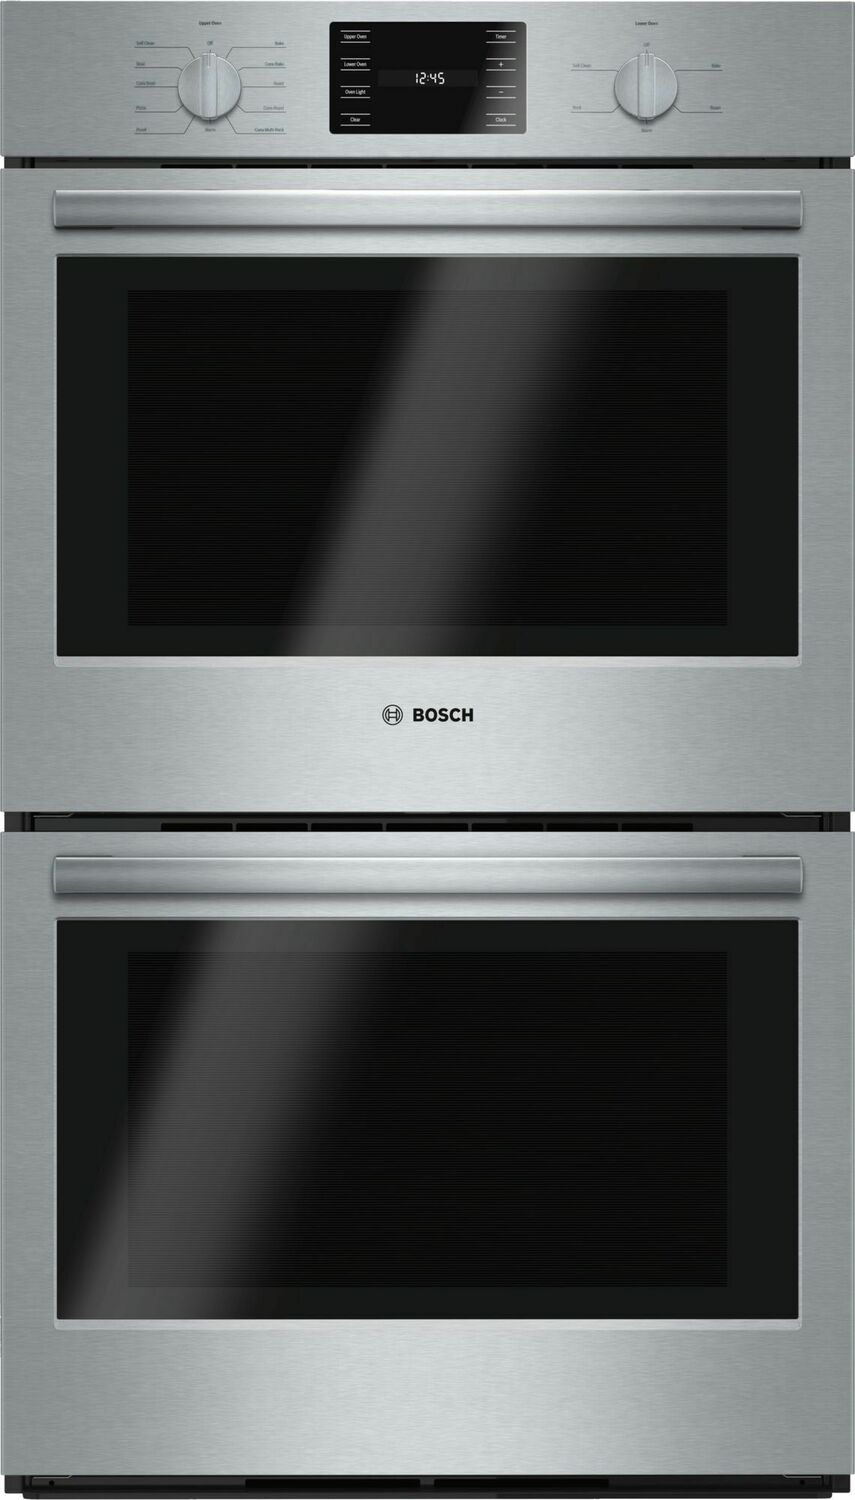 """Bosch500 Series, 30"""", Double Wall Oven, Ss, Eu Conv./thermal, Knob Control"""